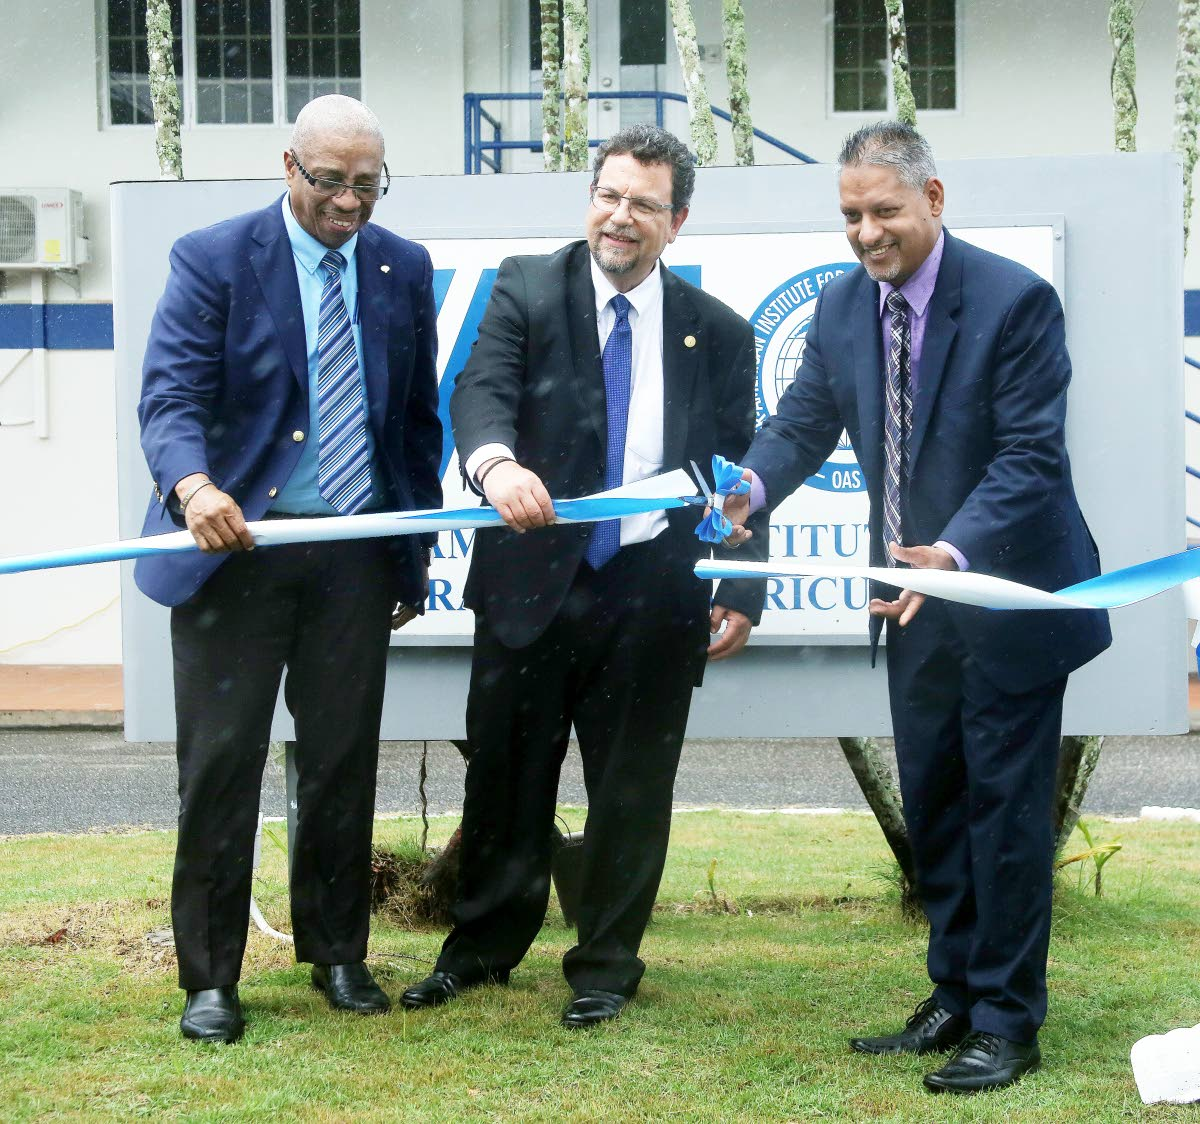 Minister of Agriculture Clarence Rambharat cuts the ribbon with IICA director of management and regional integration Diego Montenegro, centre, and IICA TT representative Gregg C E Rawlins at the opening of the institute's office, Brechin Castle, Couva on Tuesday.